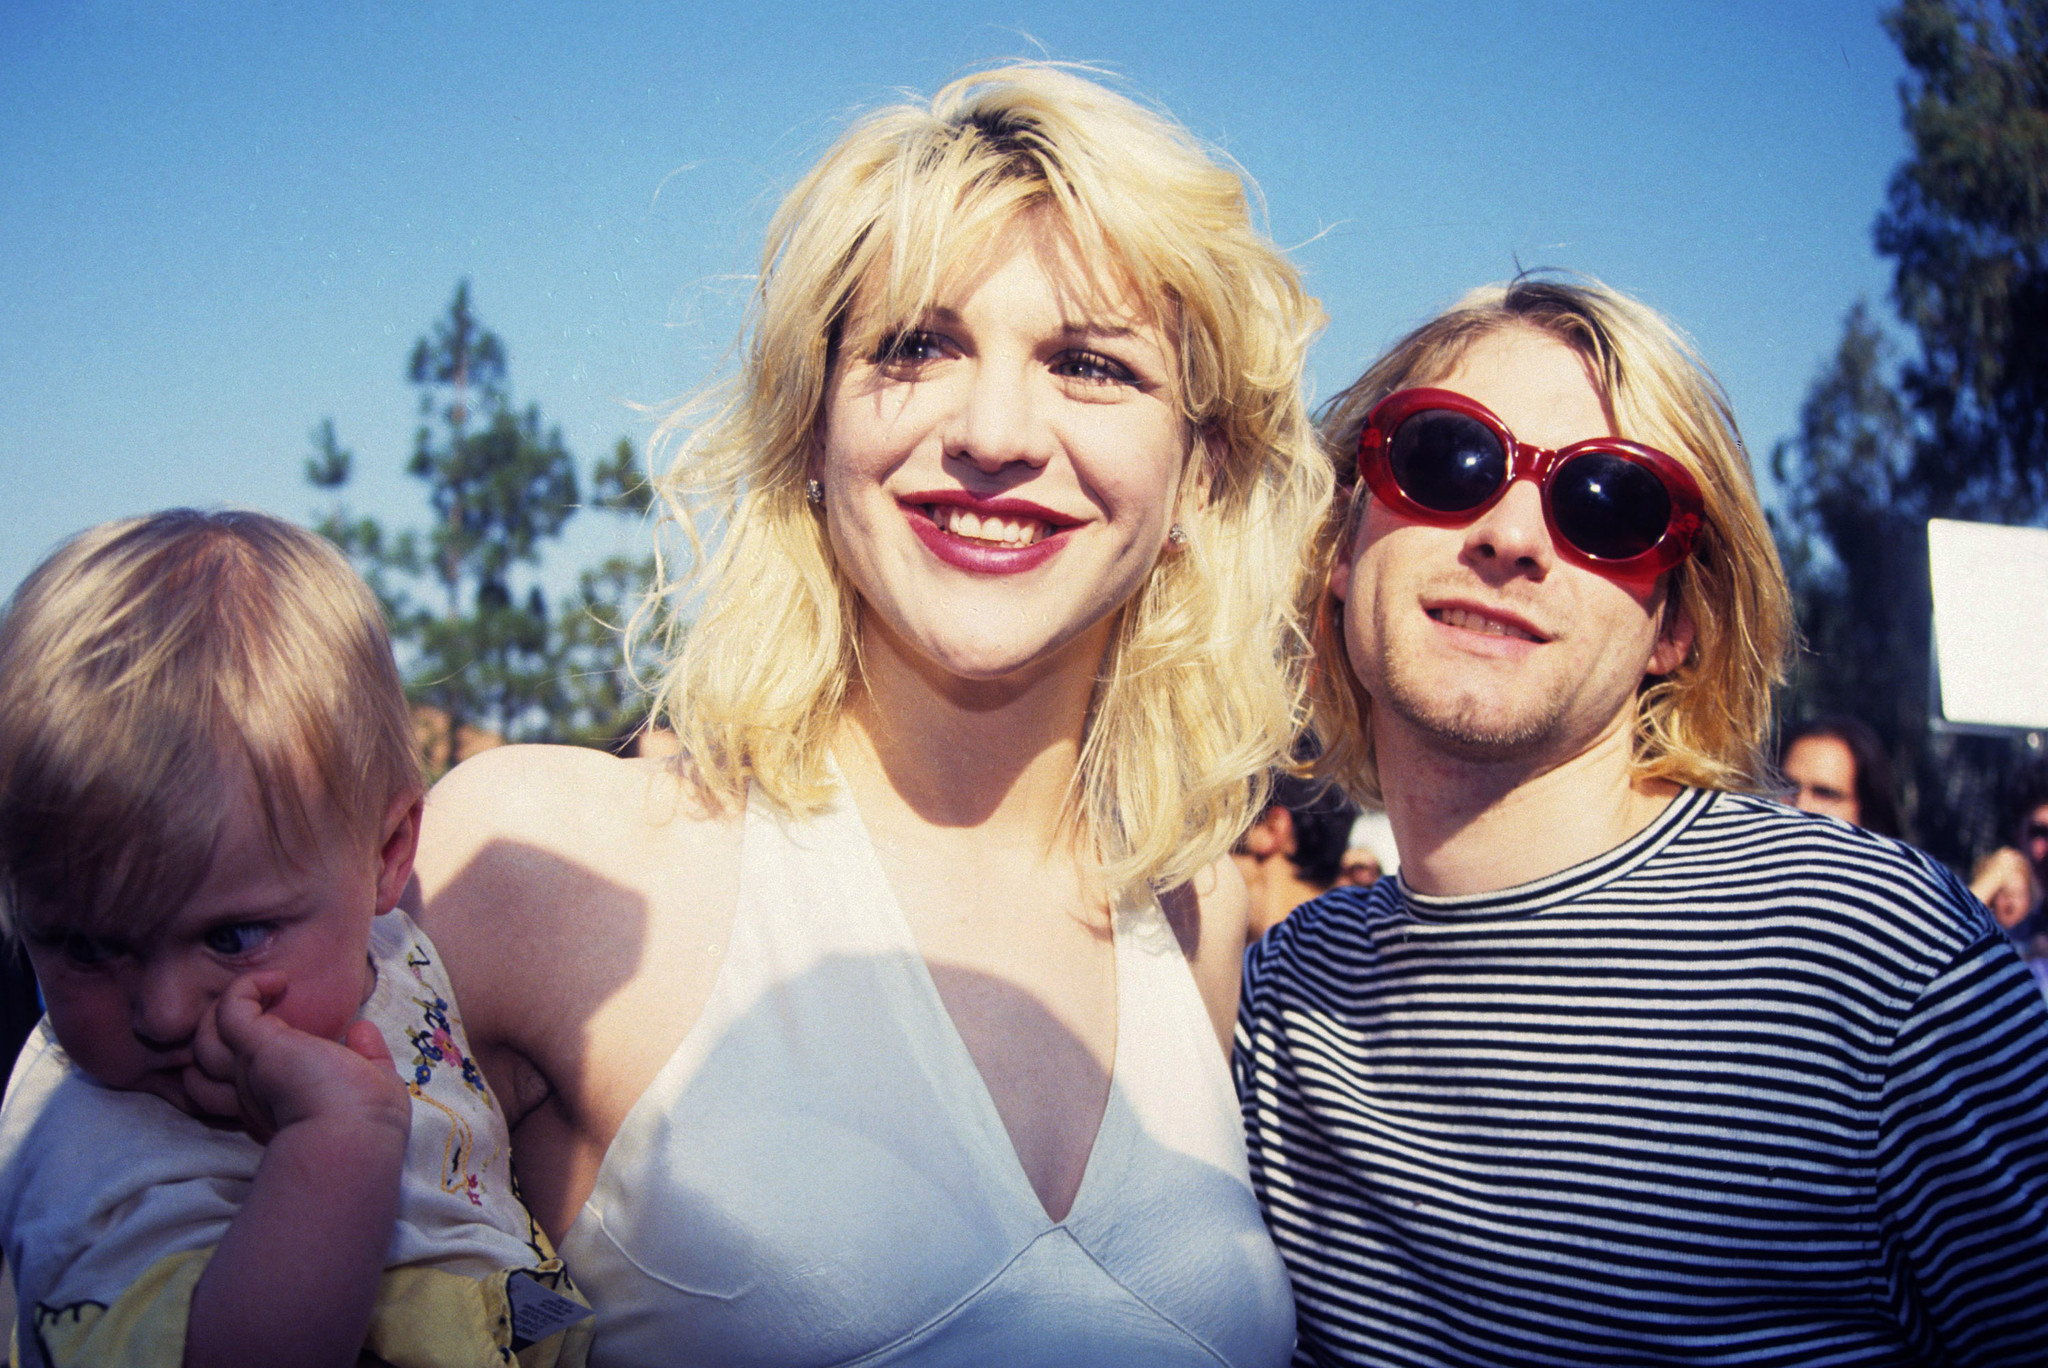 Courtney Love reflects on wedding day with Kurt Cobain on 28th anniversary